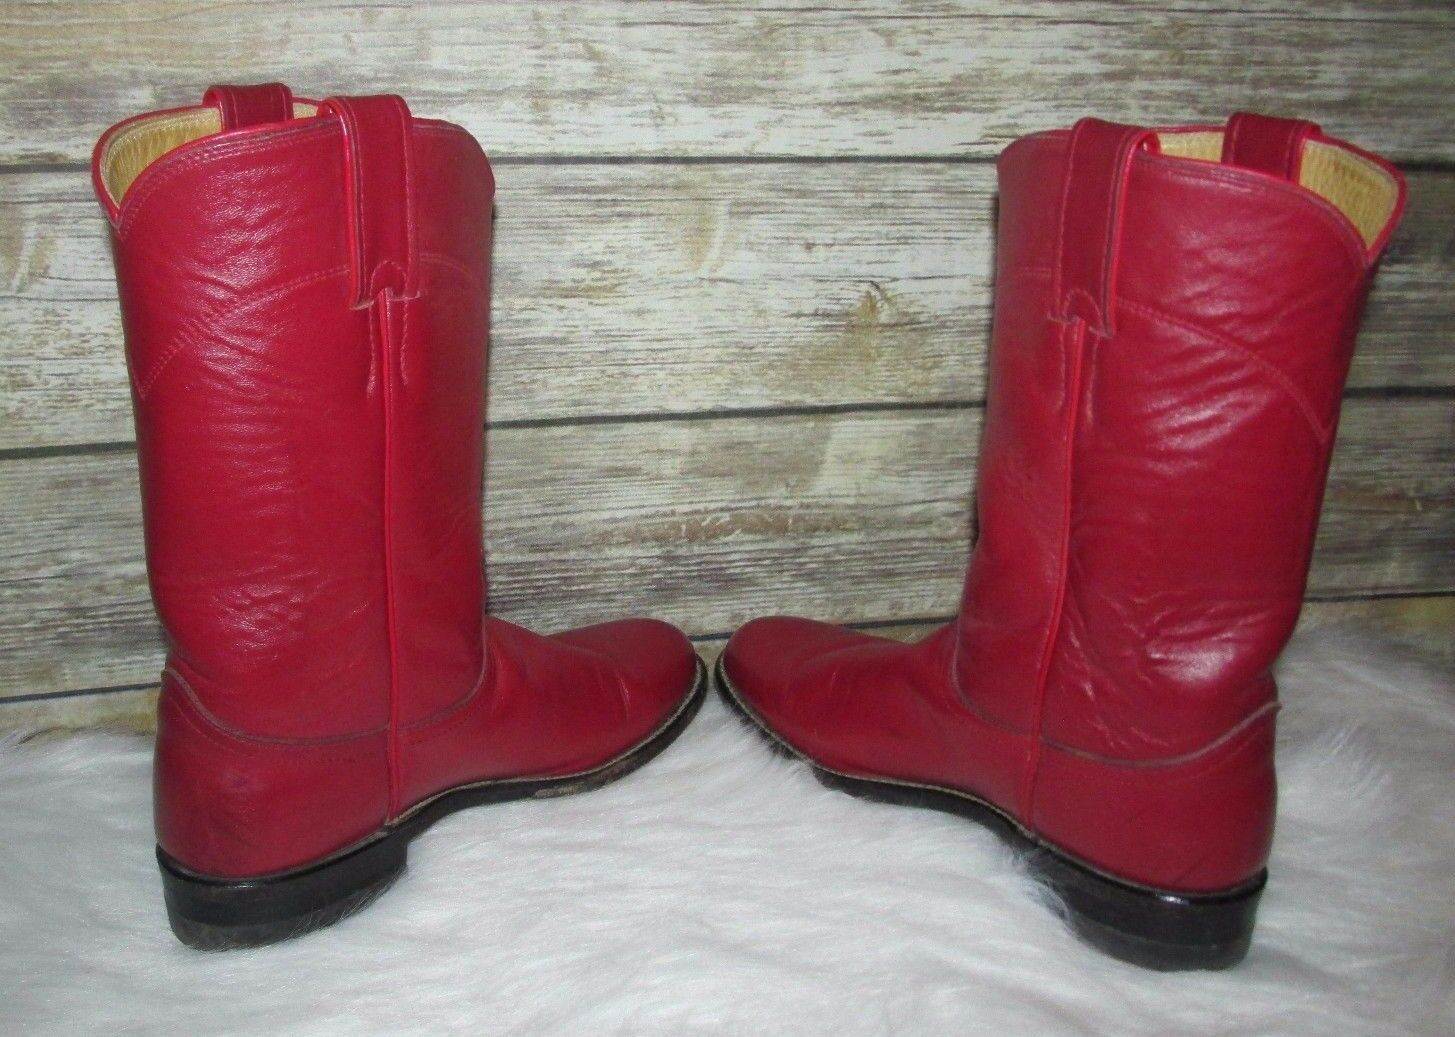 Vintage Retro Justin Red Leather Sz 6B Western Western Western Roper Riding Ankle Boots USA Made b18cc5